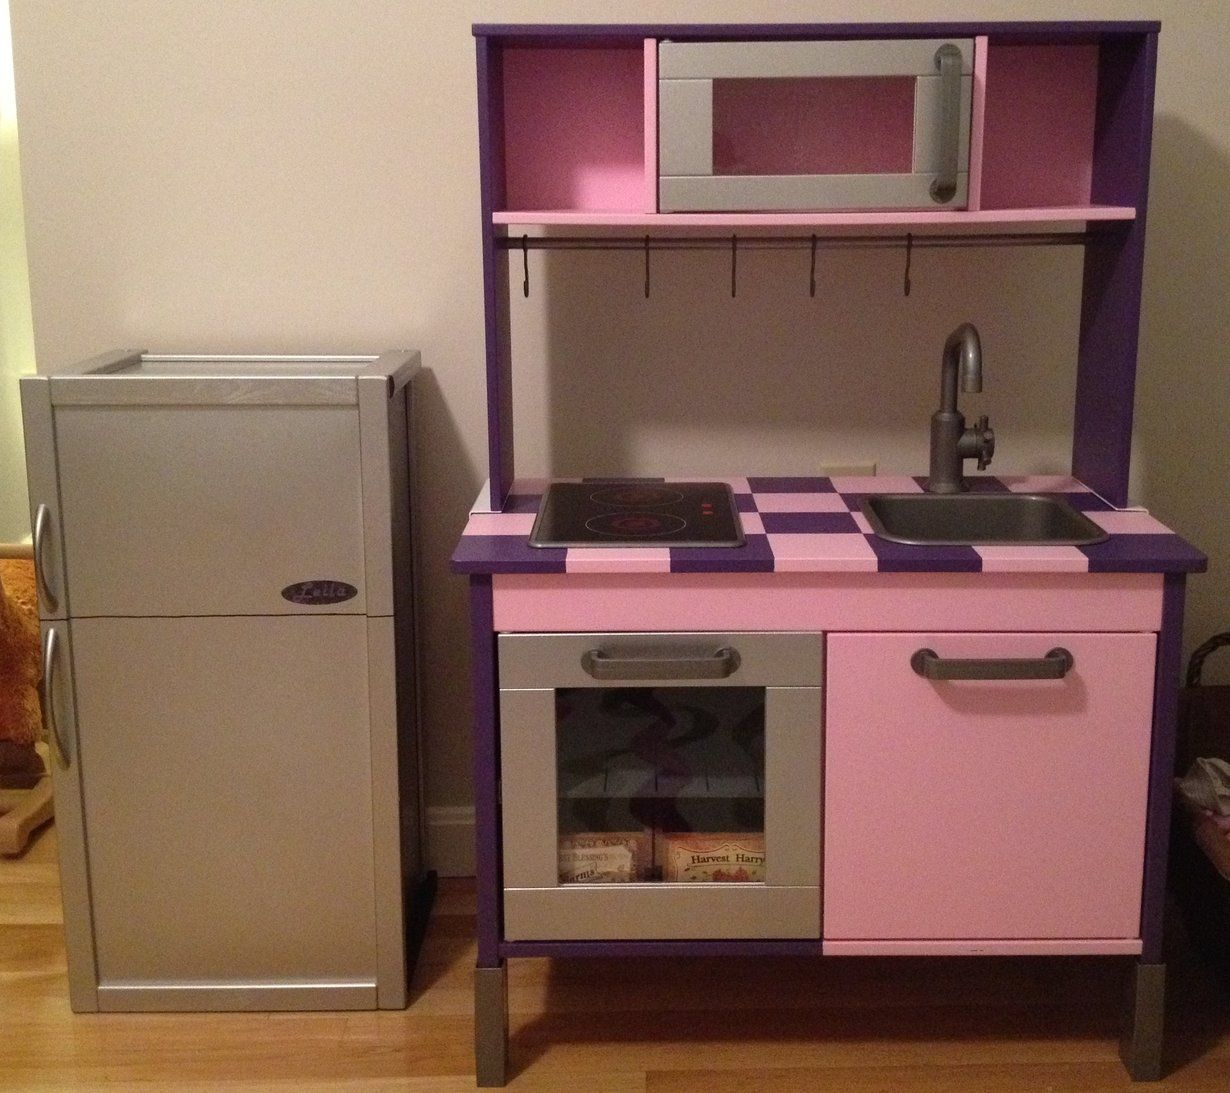 Duktig Küche Duktig Kitchen Goes From Bland To Bling Ikea Hacks